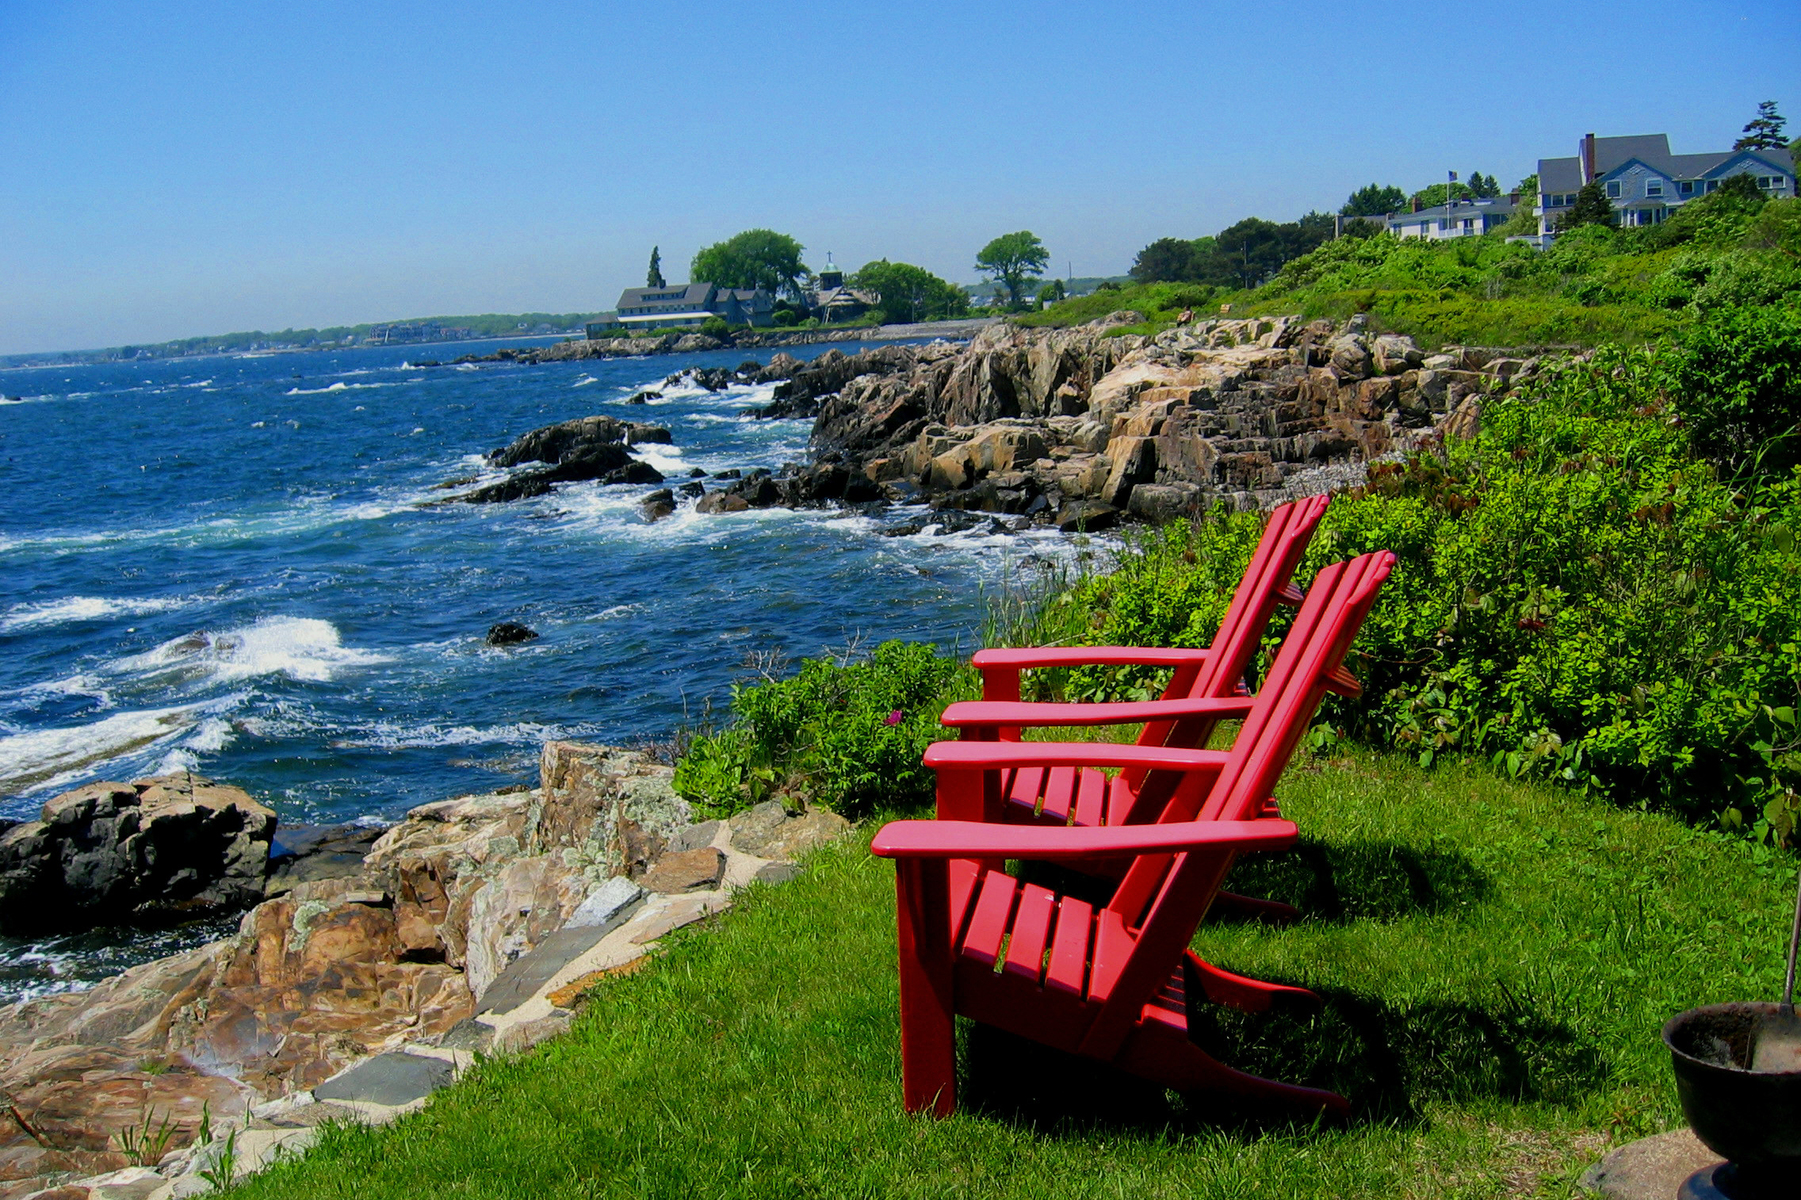 Two Adirondack chairs on the coast of Maine